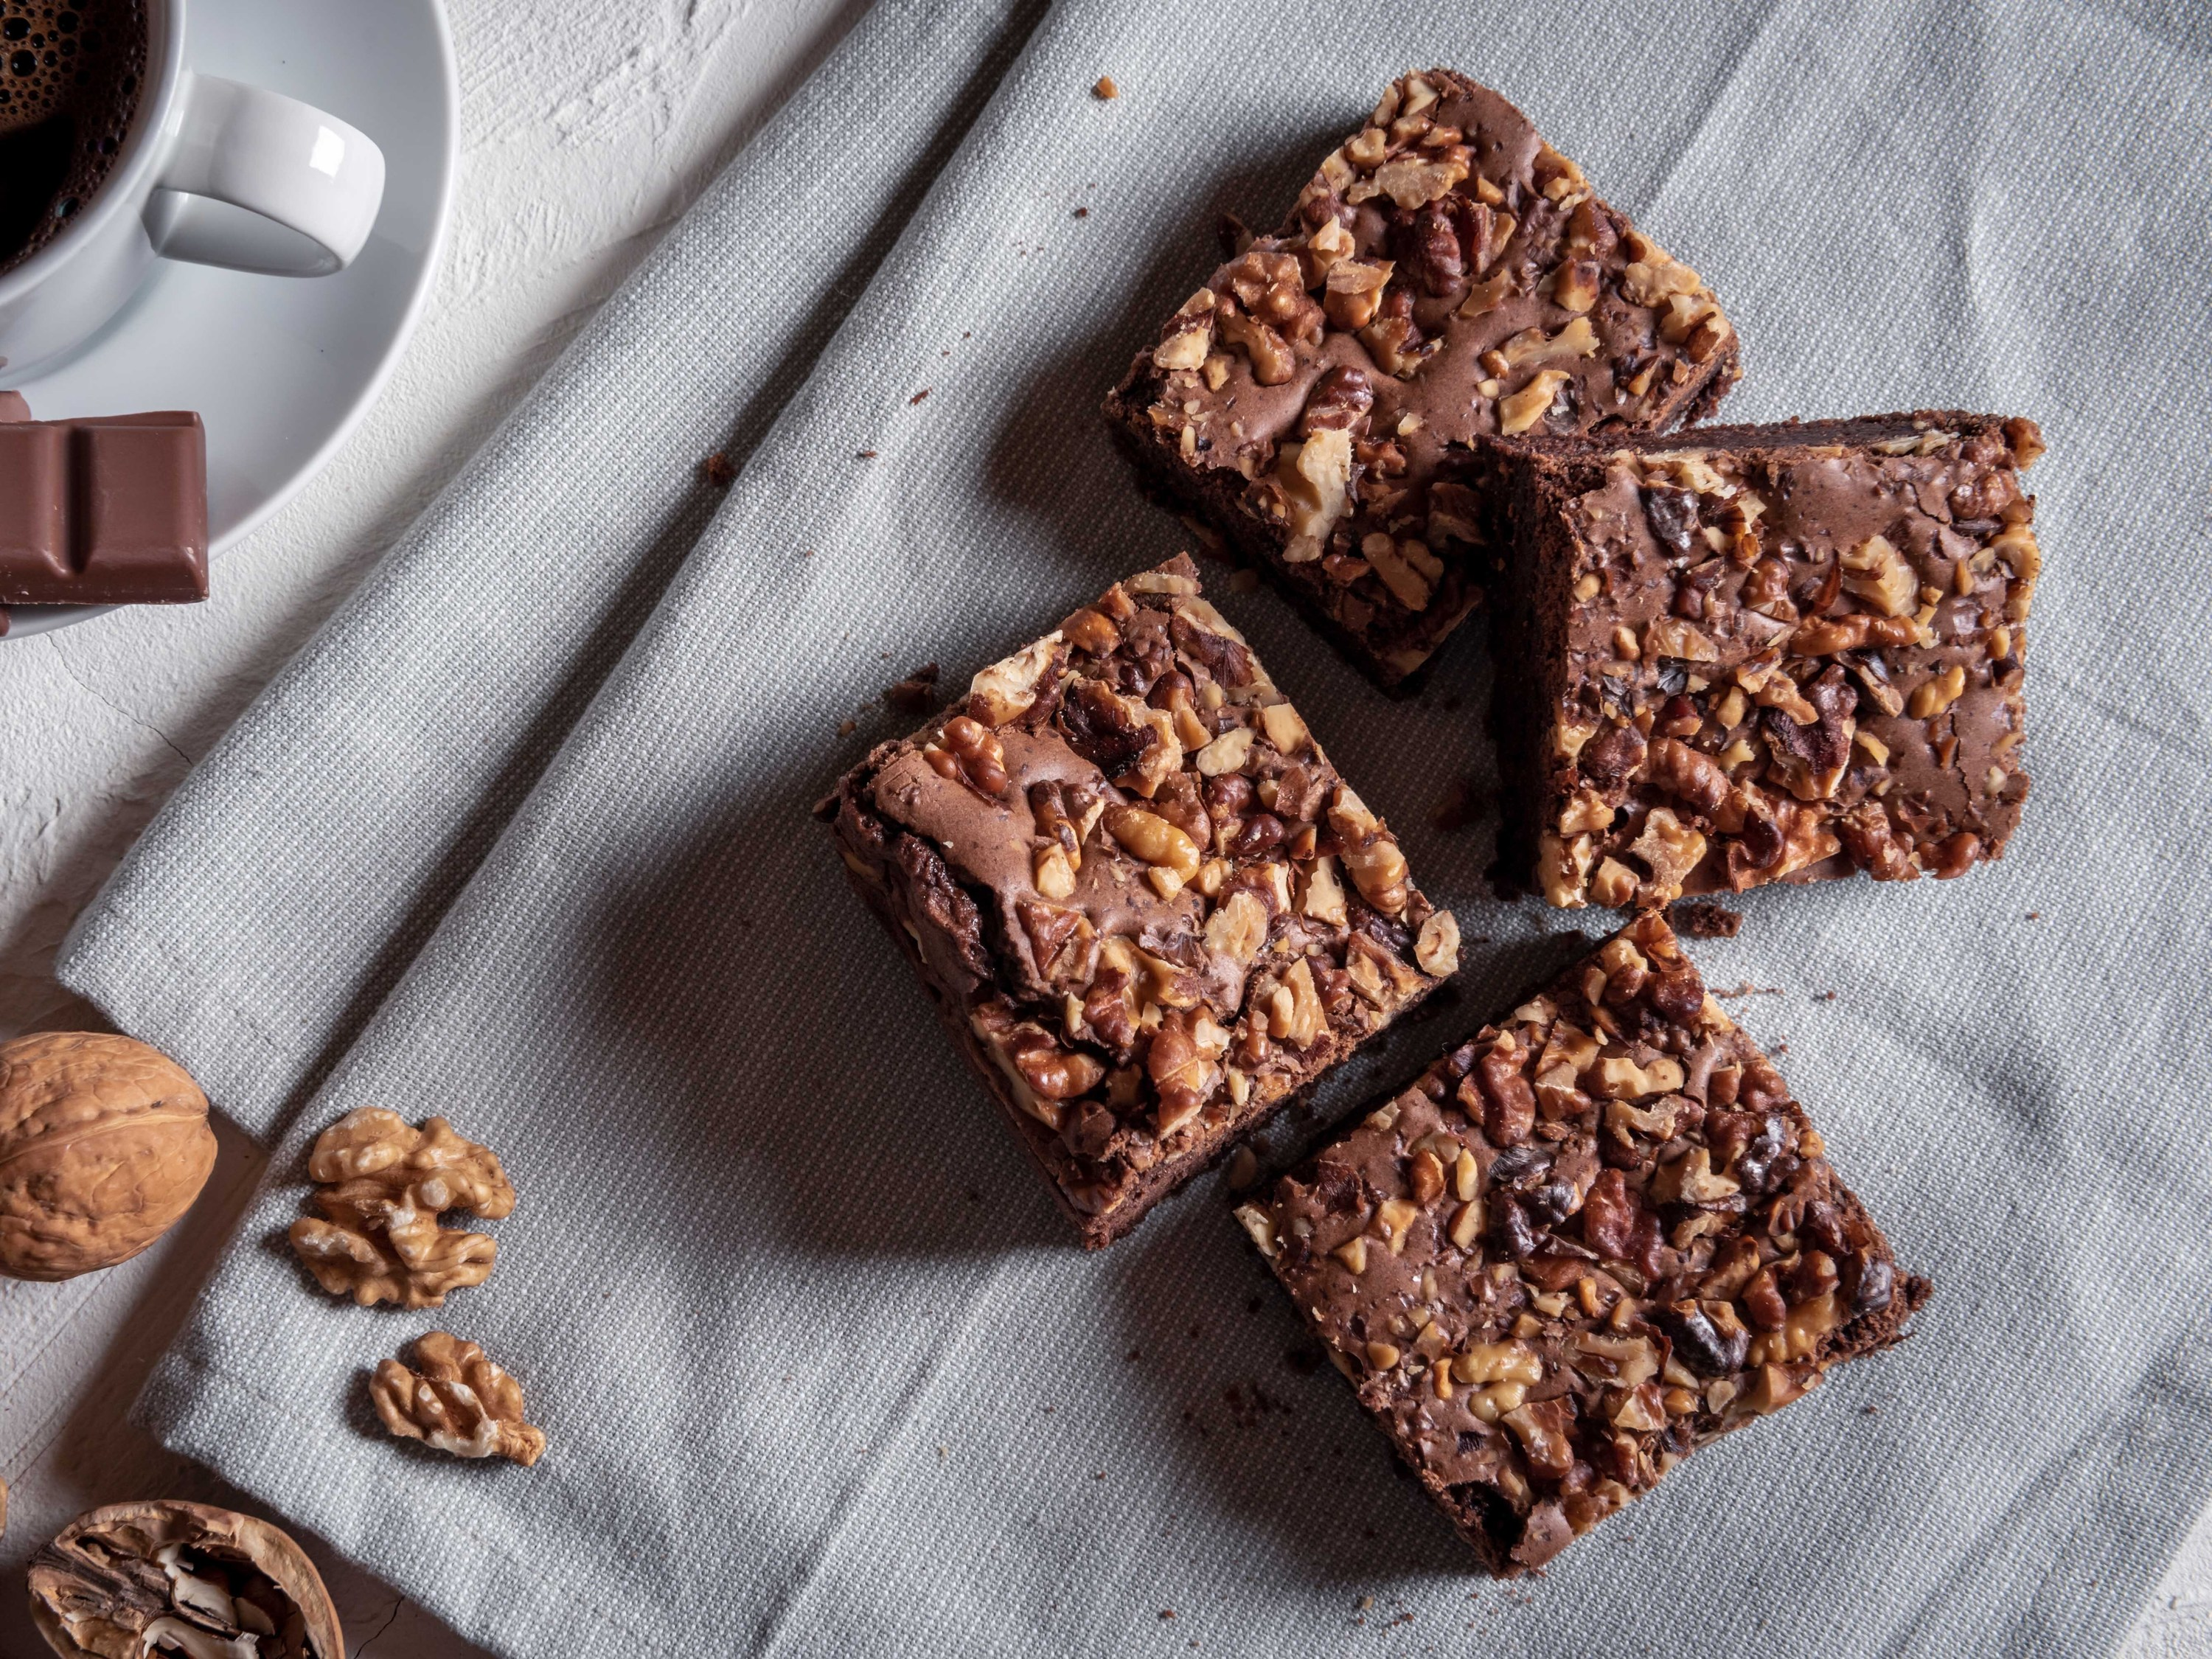 Brownies were invented in Chicago, and now you can whip up the original recipe at home